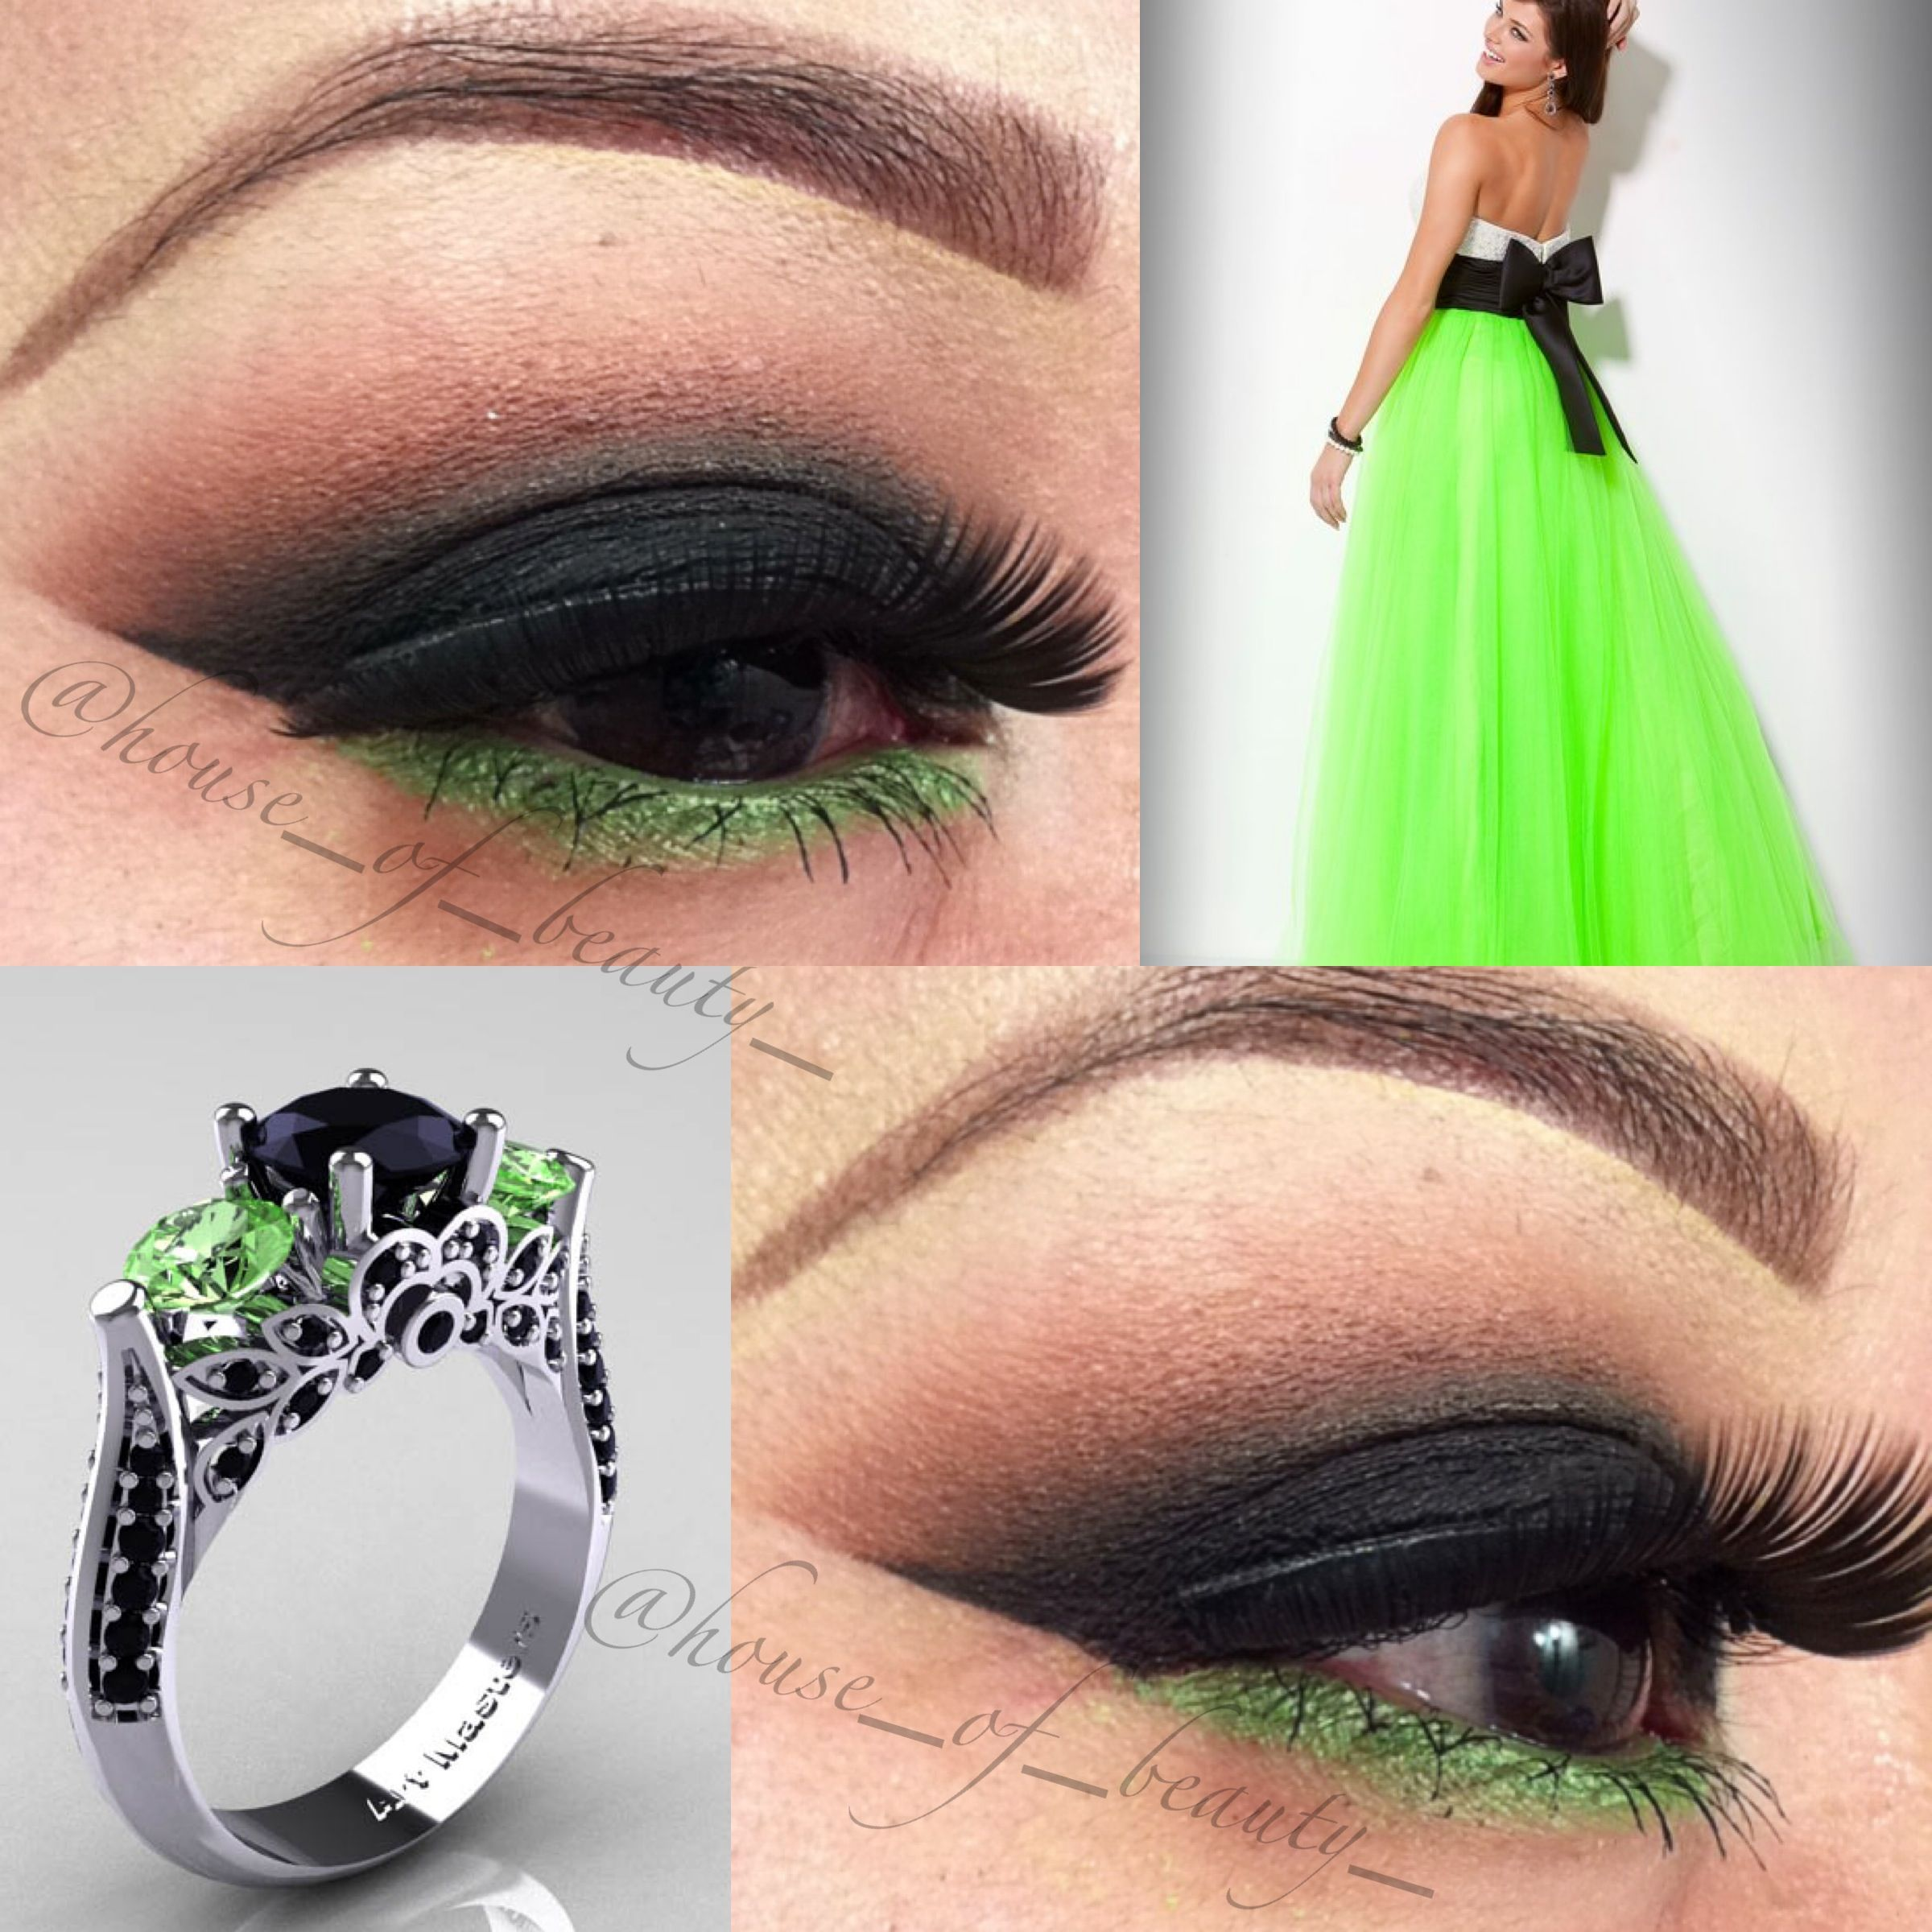 Makeup with emerald green dress  Smokey eye with pop of green Dress and ring to compliment the